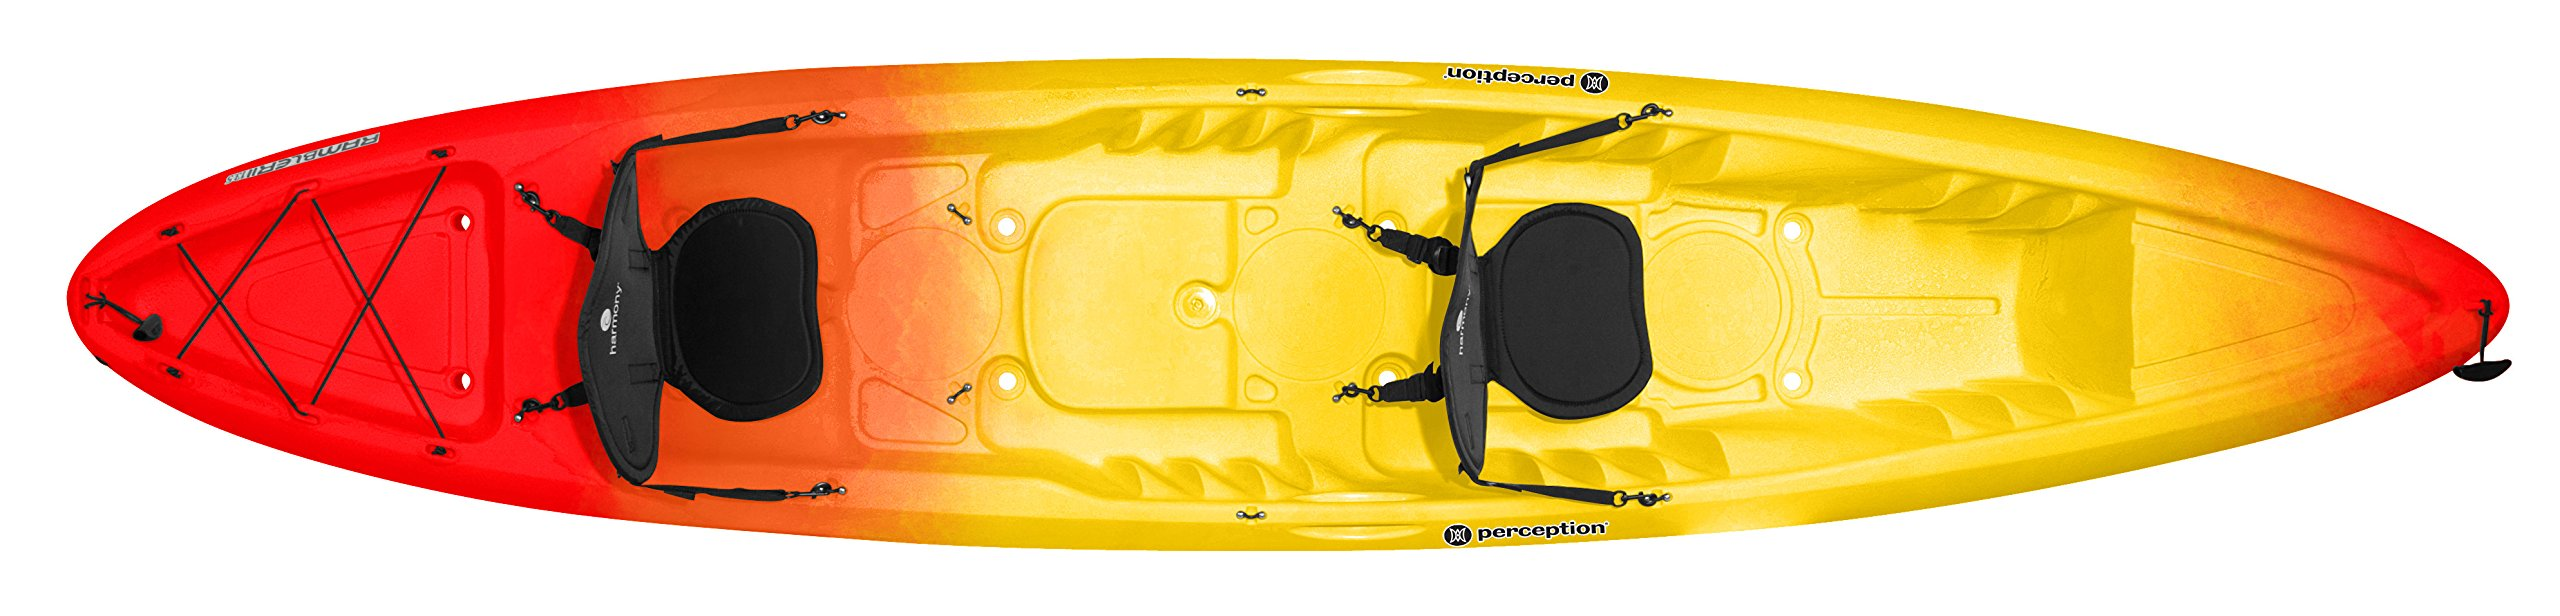 Perception Kayak Rambler Sit On Top for Recreation by Perception Kayaks